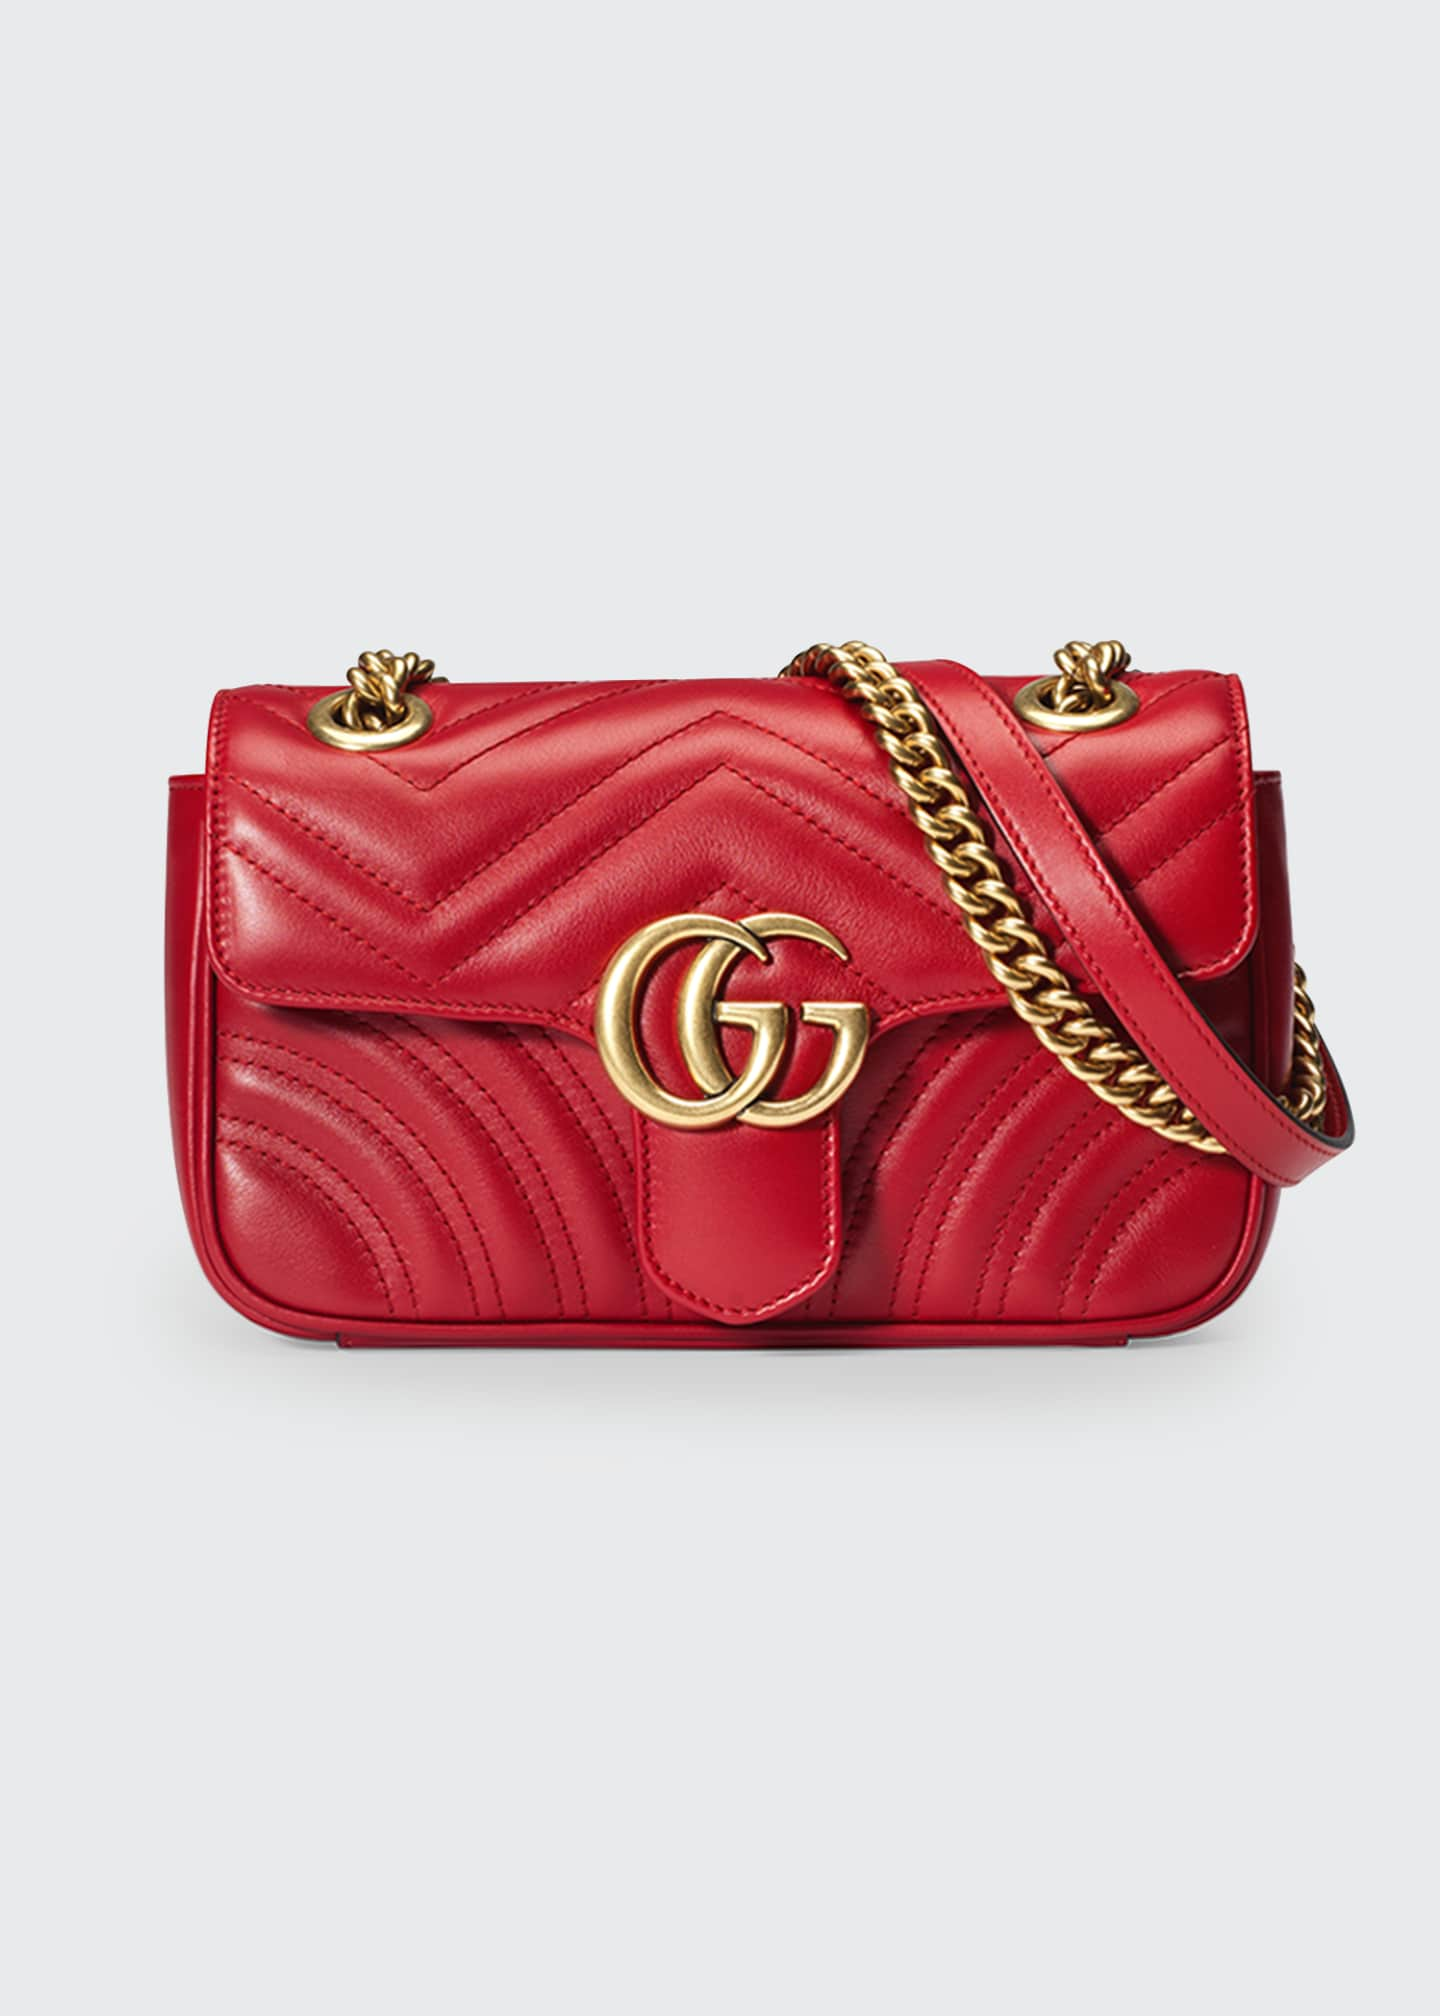 Gucci GG Marmont 2.0 Mini Matelasse Shoulder Bag